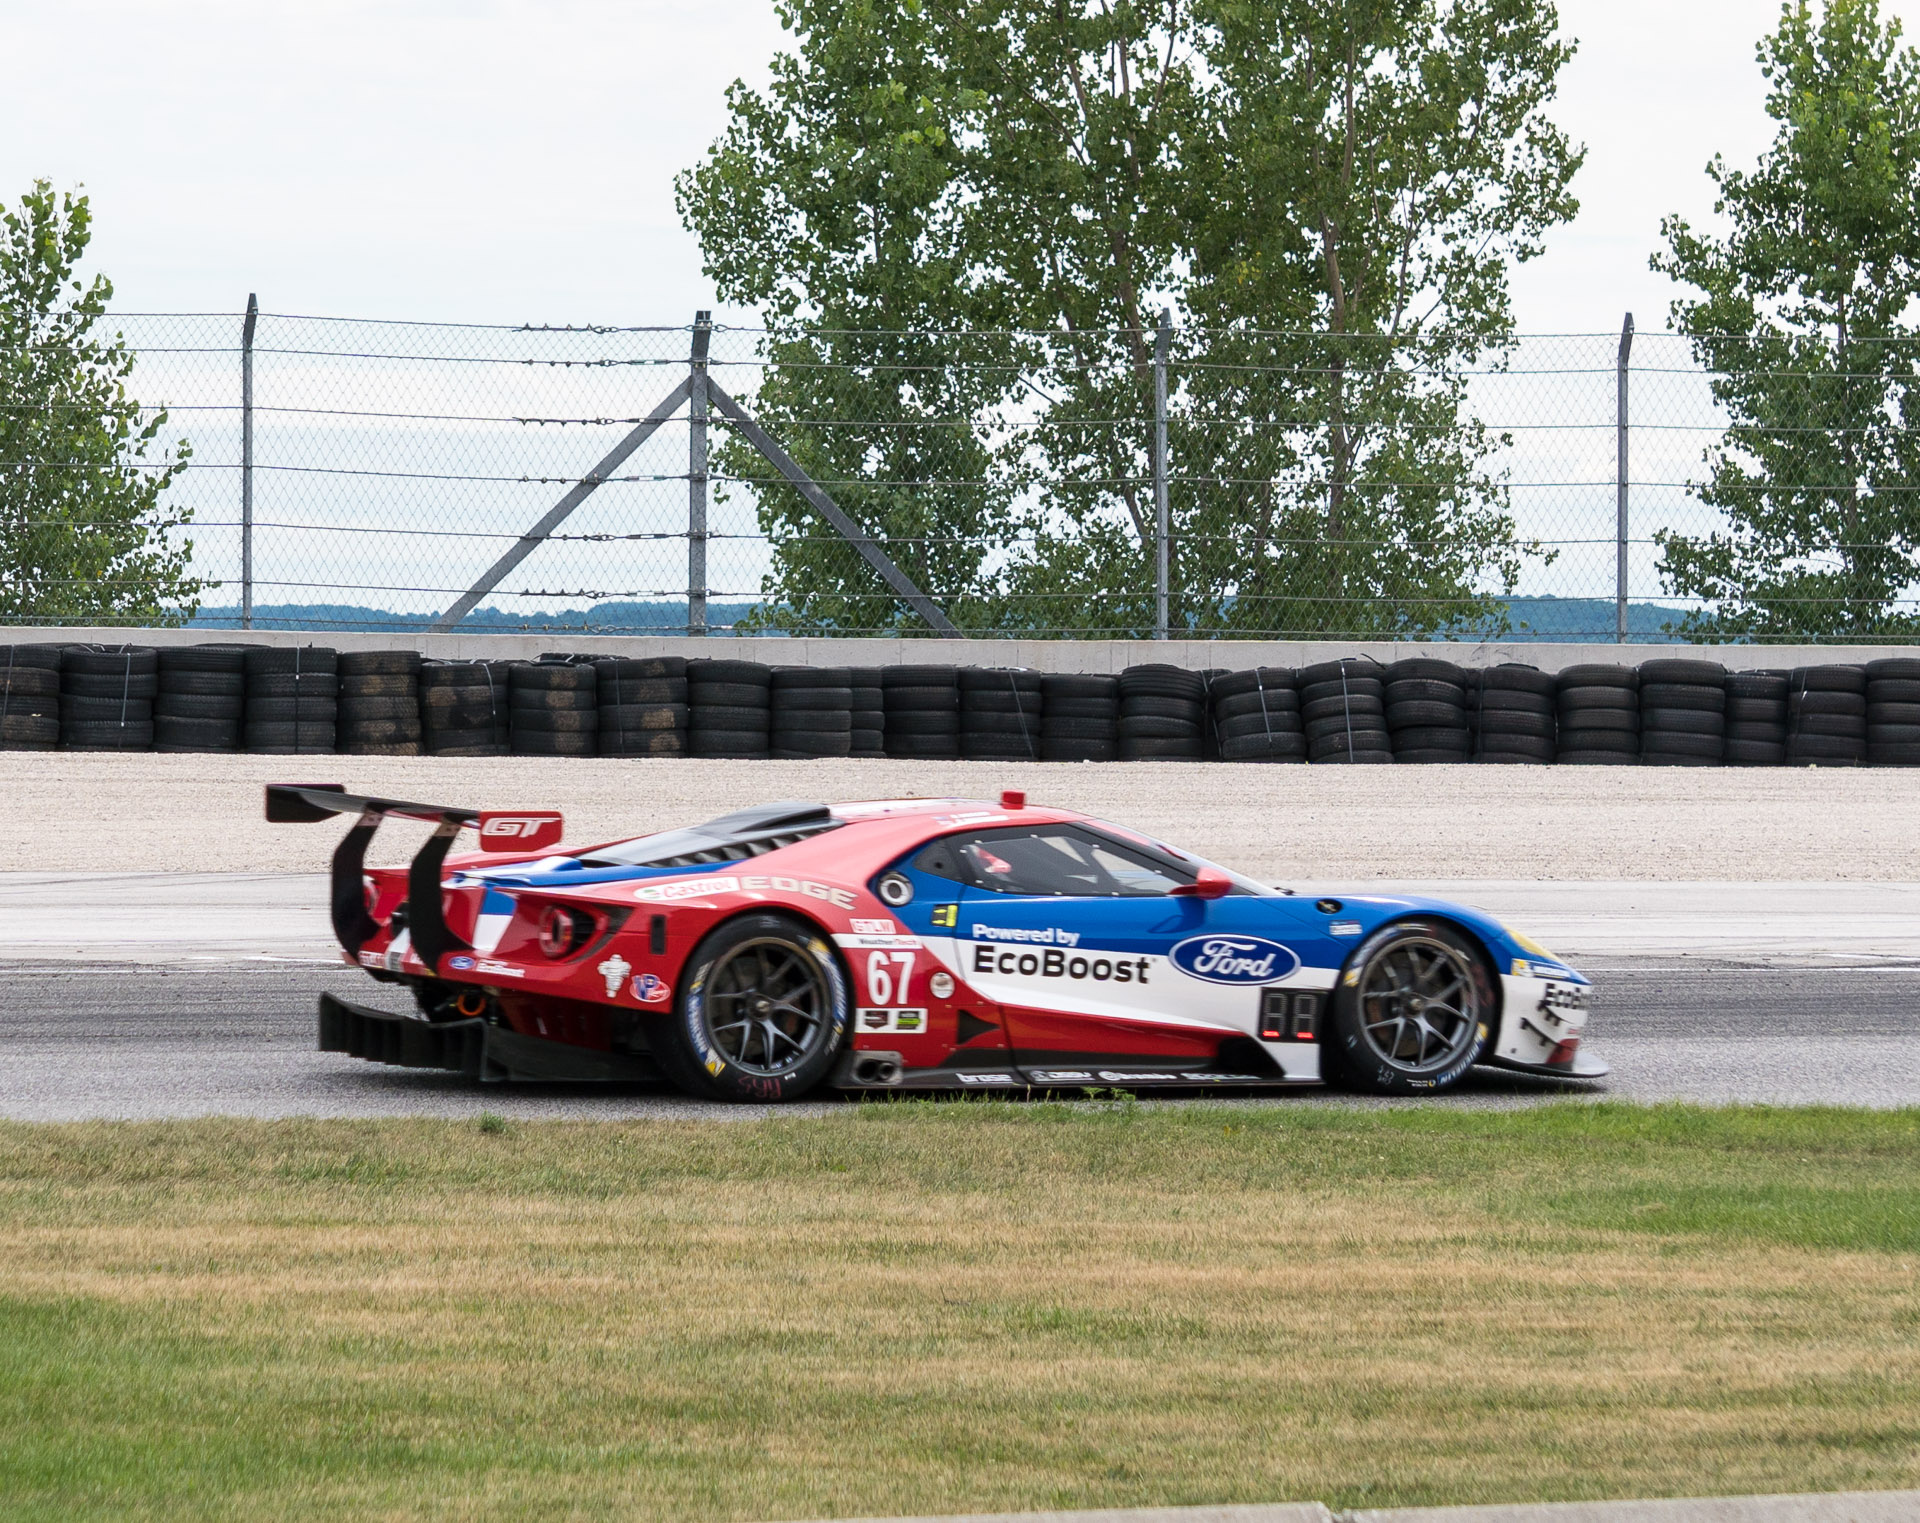 While The Body Of The Gt Lm Aka Lm Gte Race Car Might Look Quite A Bit Like The Production Ford Gt These Are Highly Customized Vehicles With A Number Of